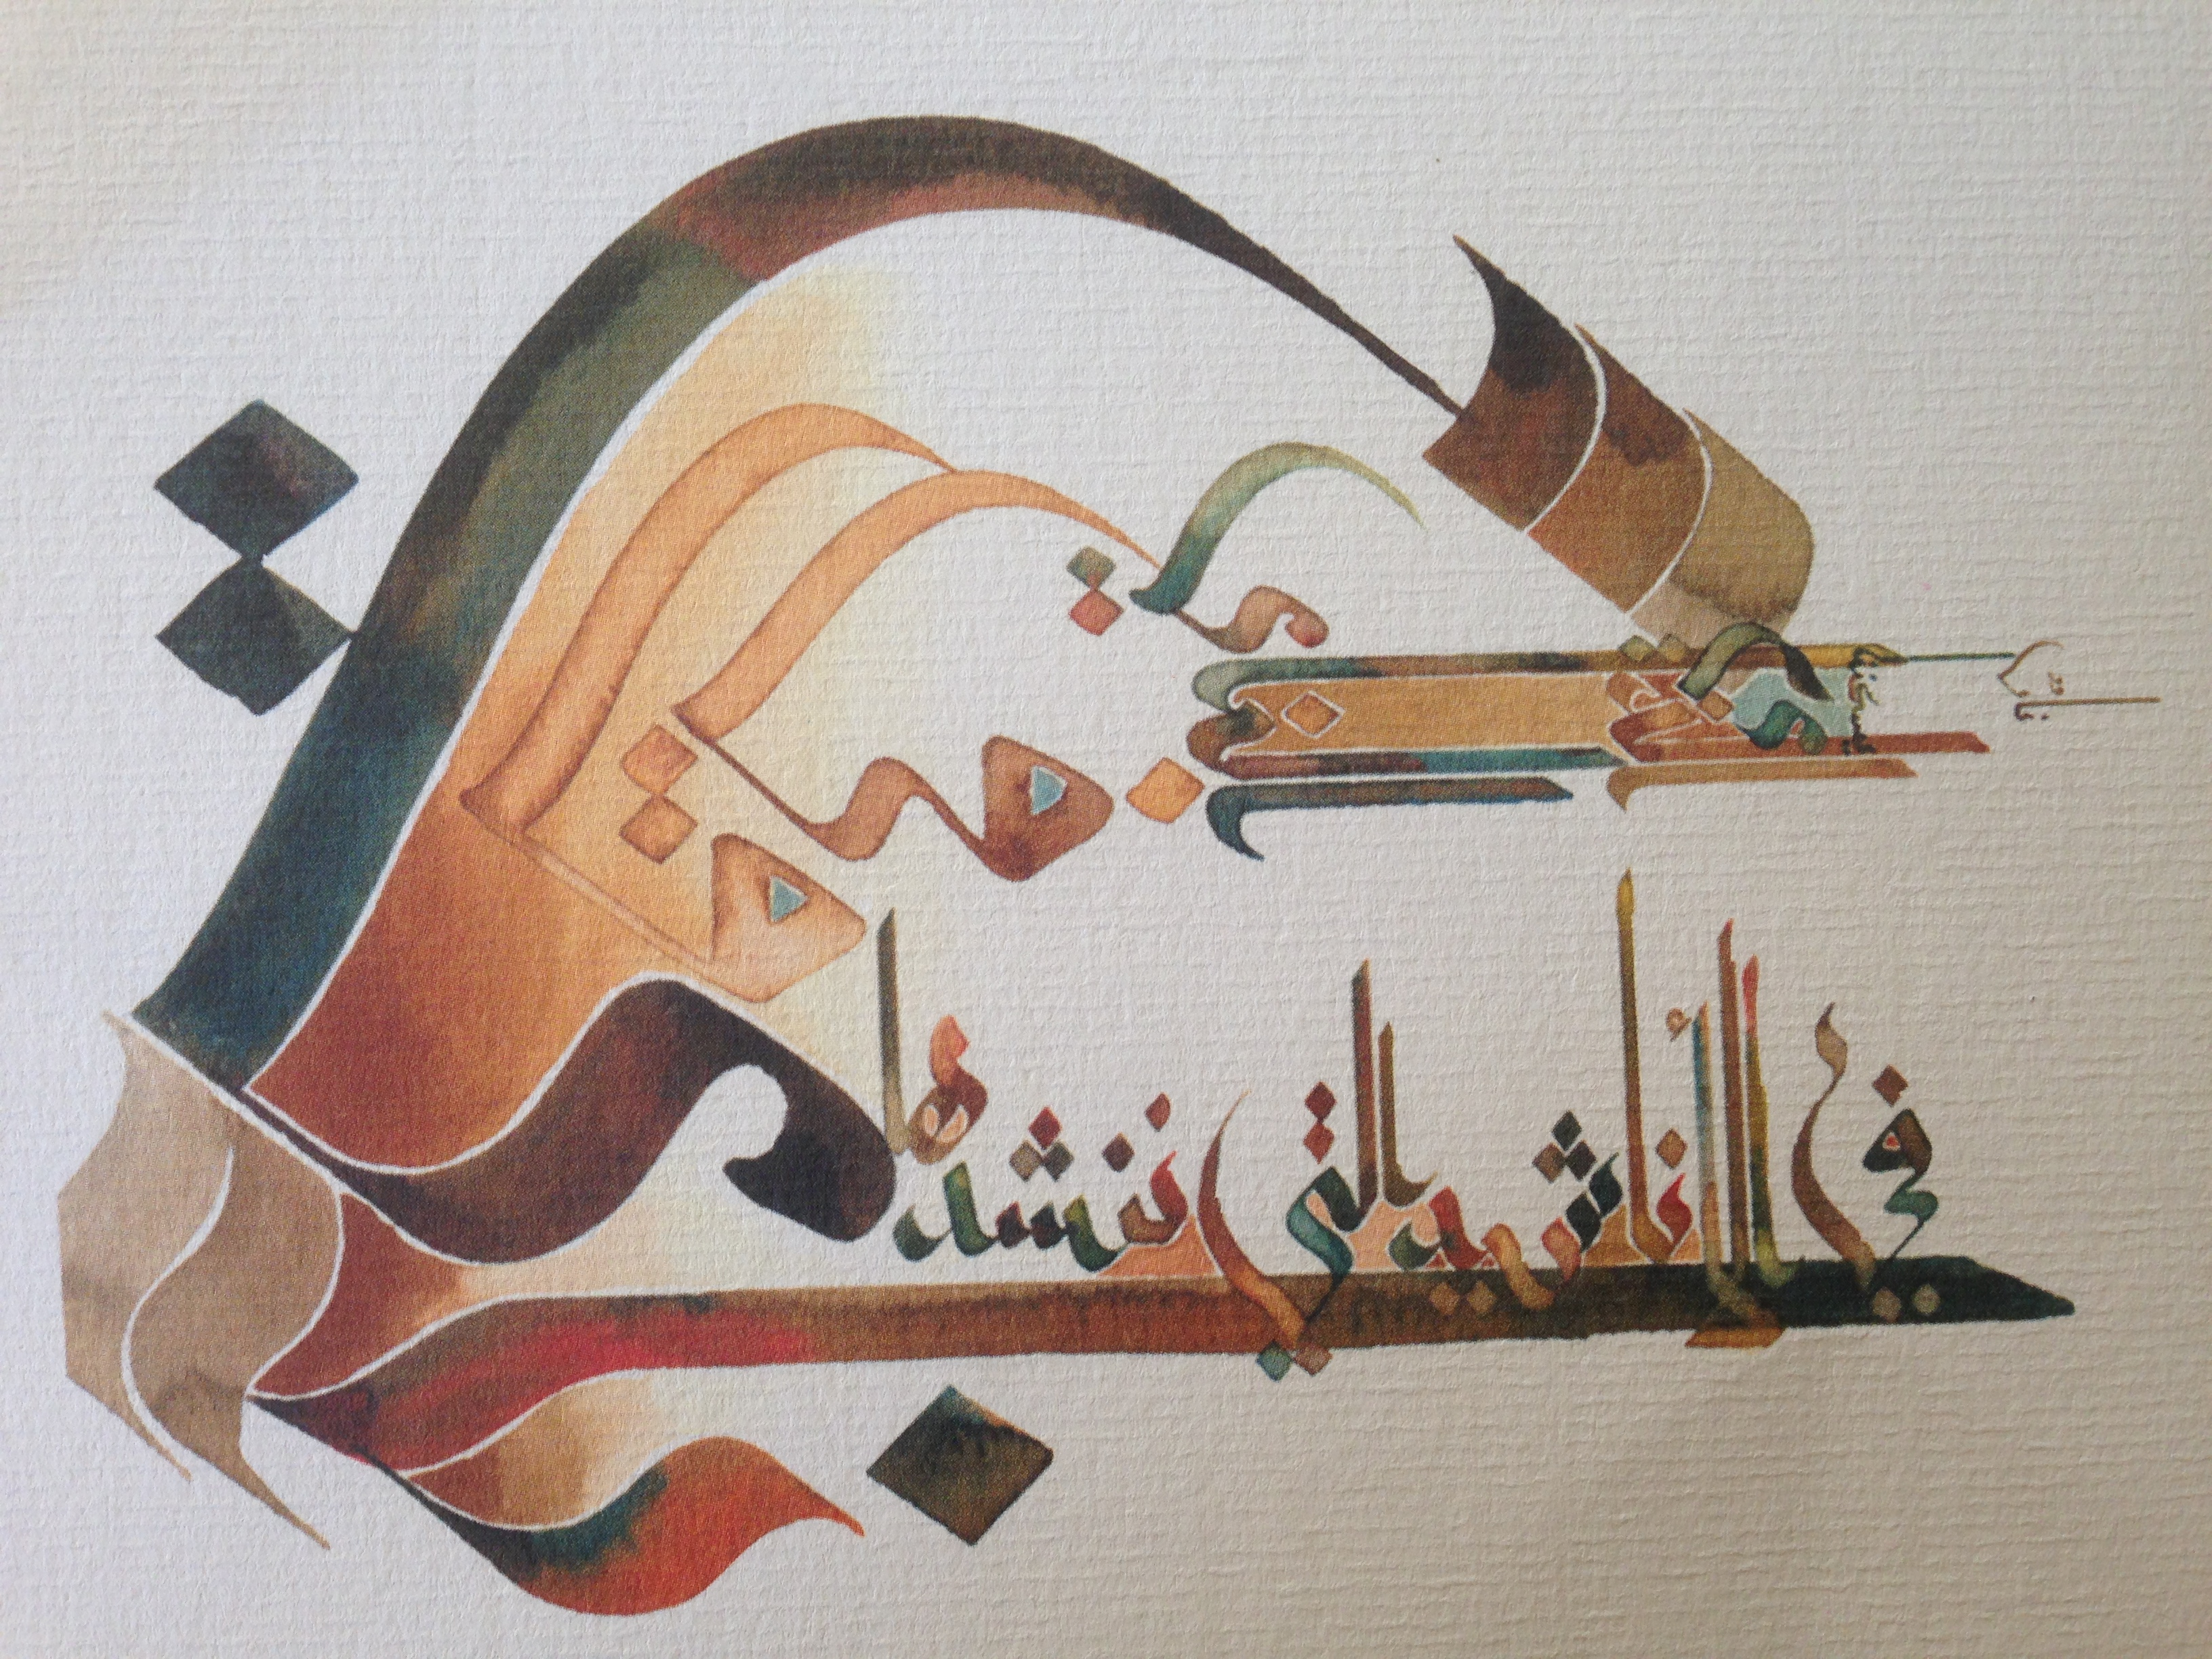 Calligraphy Art: This motif expresses Tolerance